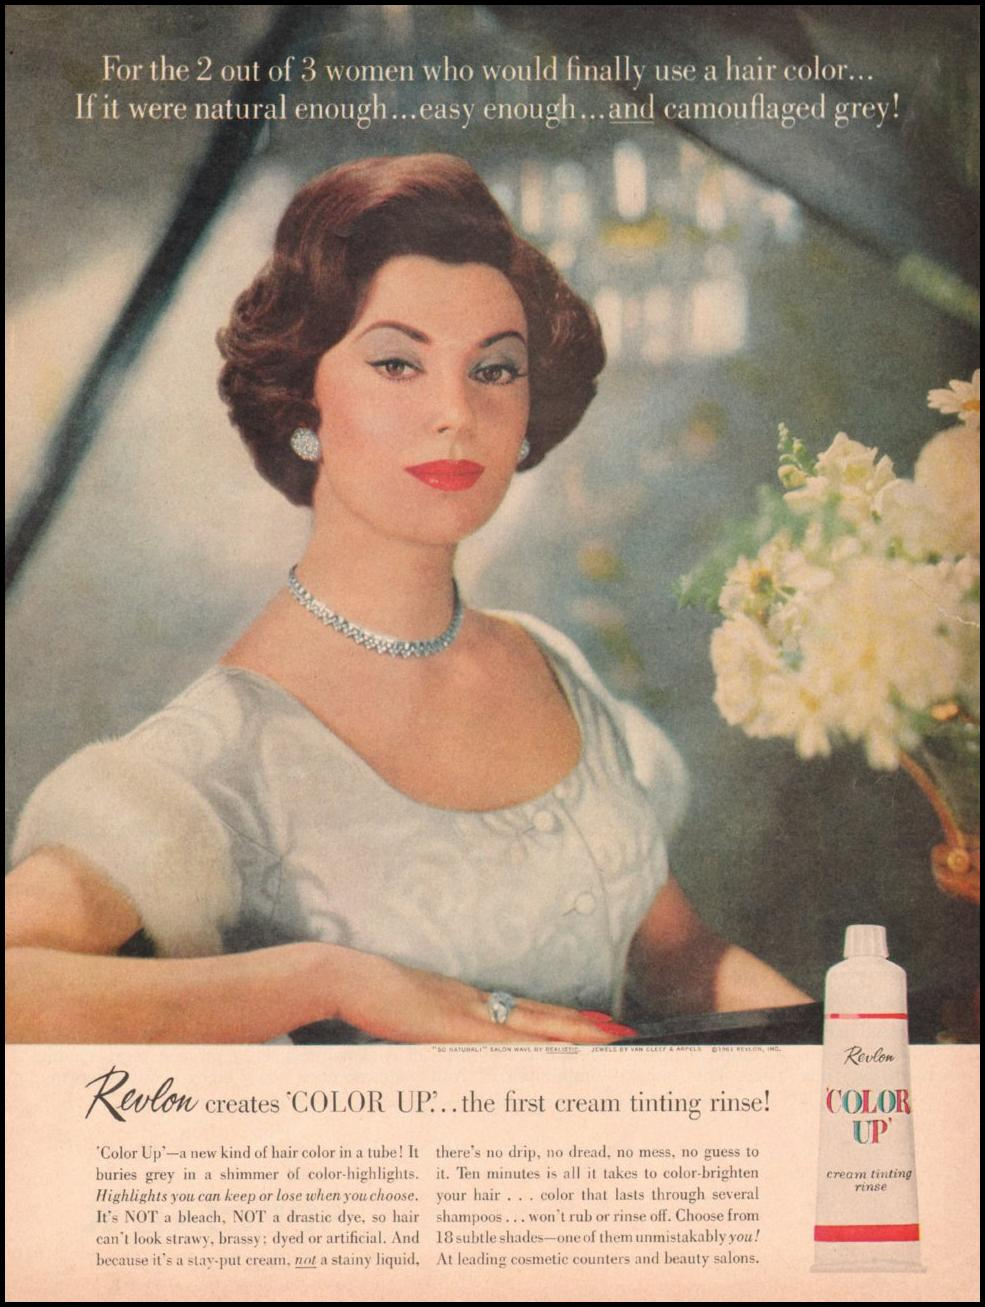 REVLON COLOR-UP CREAM TINTING RINSE LIFE 05/05/1961